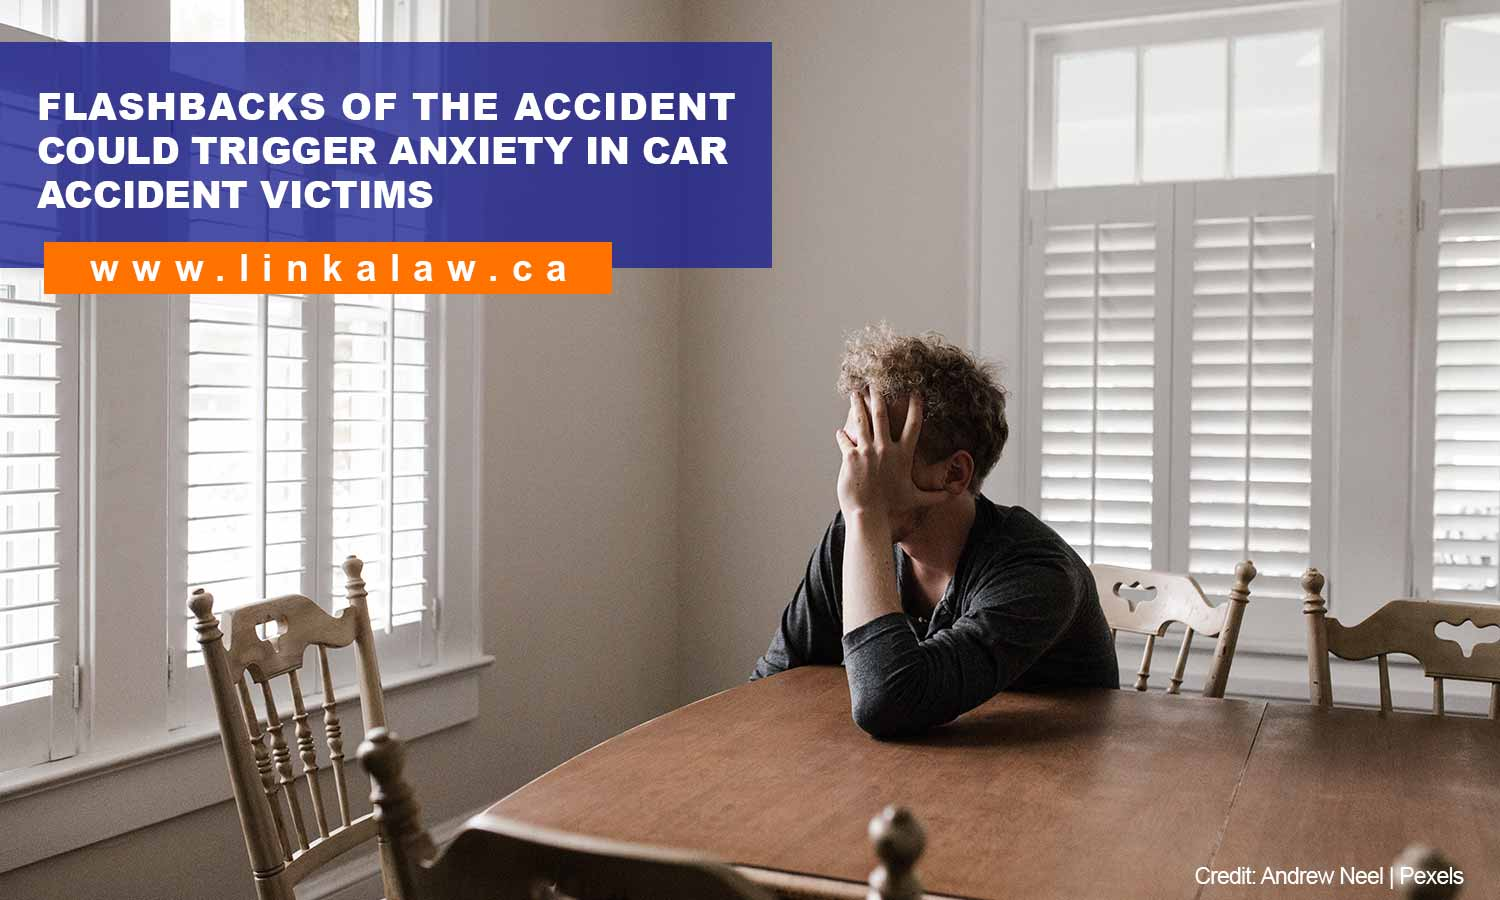 Flashbacks of the accident could trigger anxiety in car accident victims